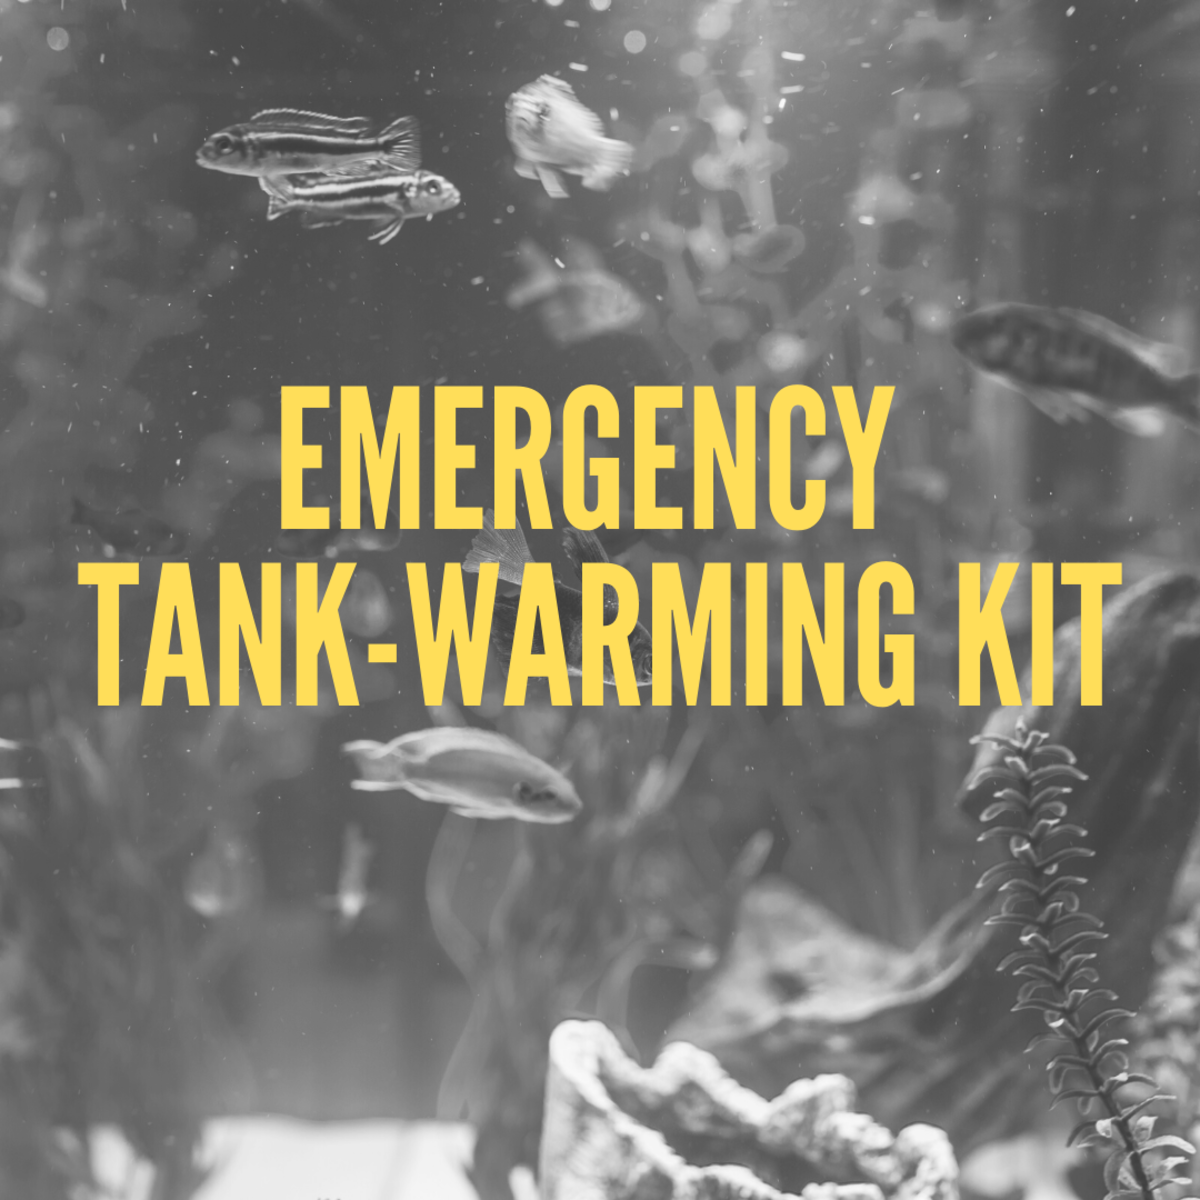 Necessary Supplies to Keep Your Fish Tank Warm During Power Outages